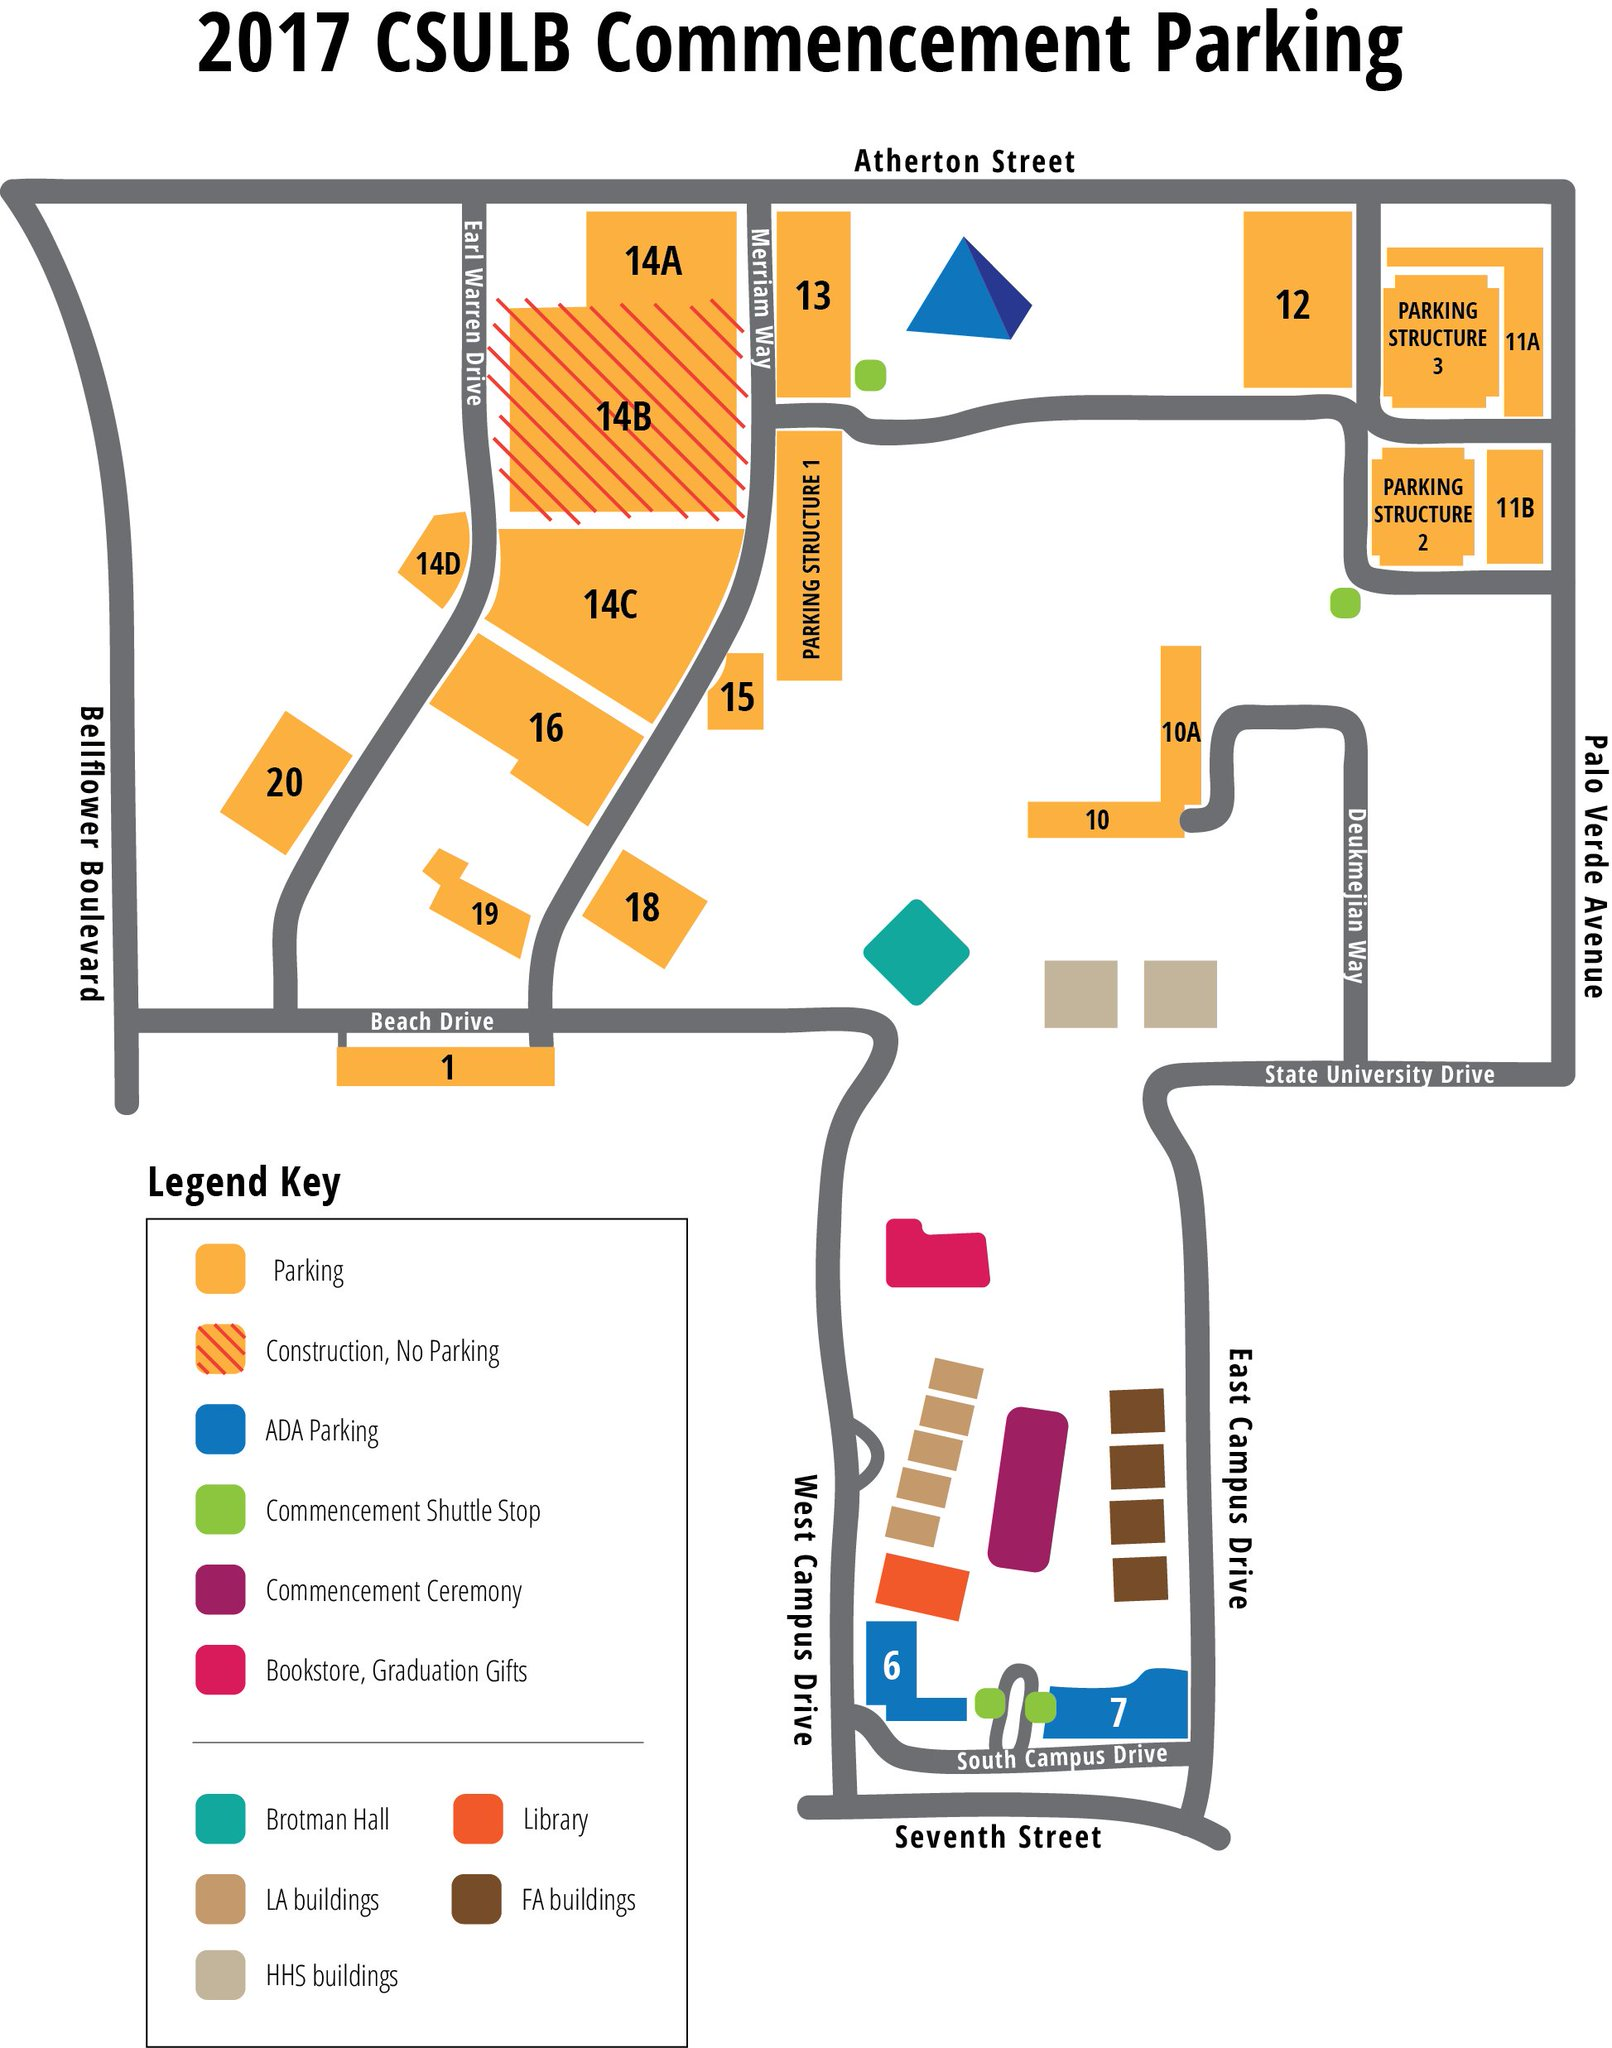 Not sure where to go at commencement?  Follow our map so you don't get lost in the crowds or parking lots! #CSULB #Graduation #Classof2017 https://t.co/EoL0EPyD8w